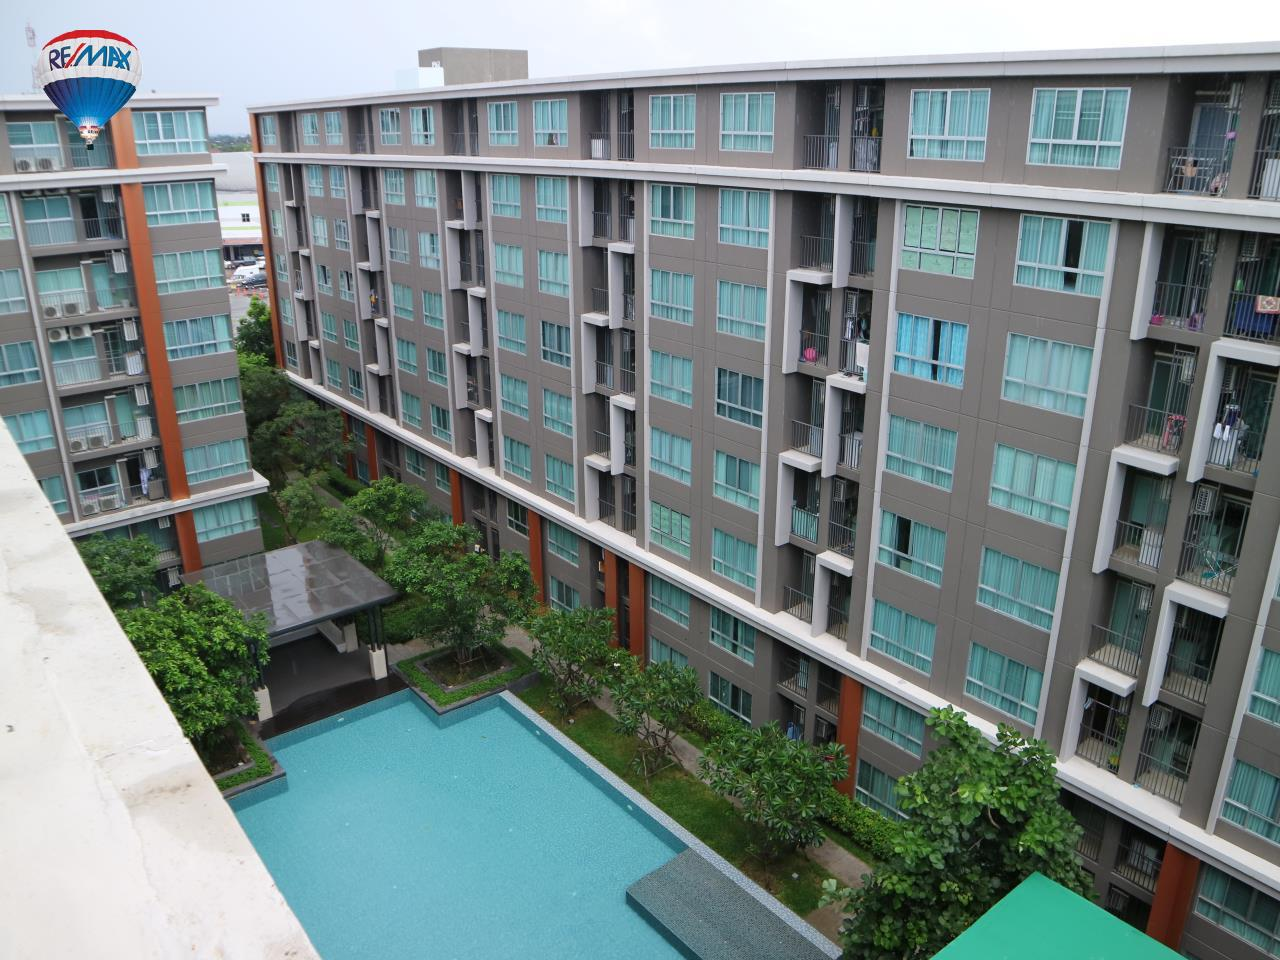 RE/MAX Classic Agency's Condominium for rent, downtown near BigC Super center Chiangrai. 25